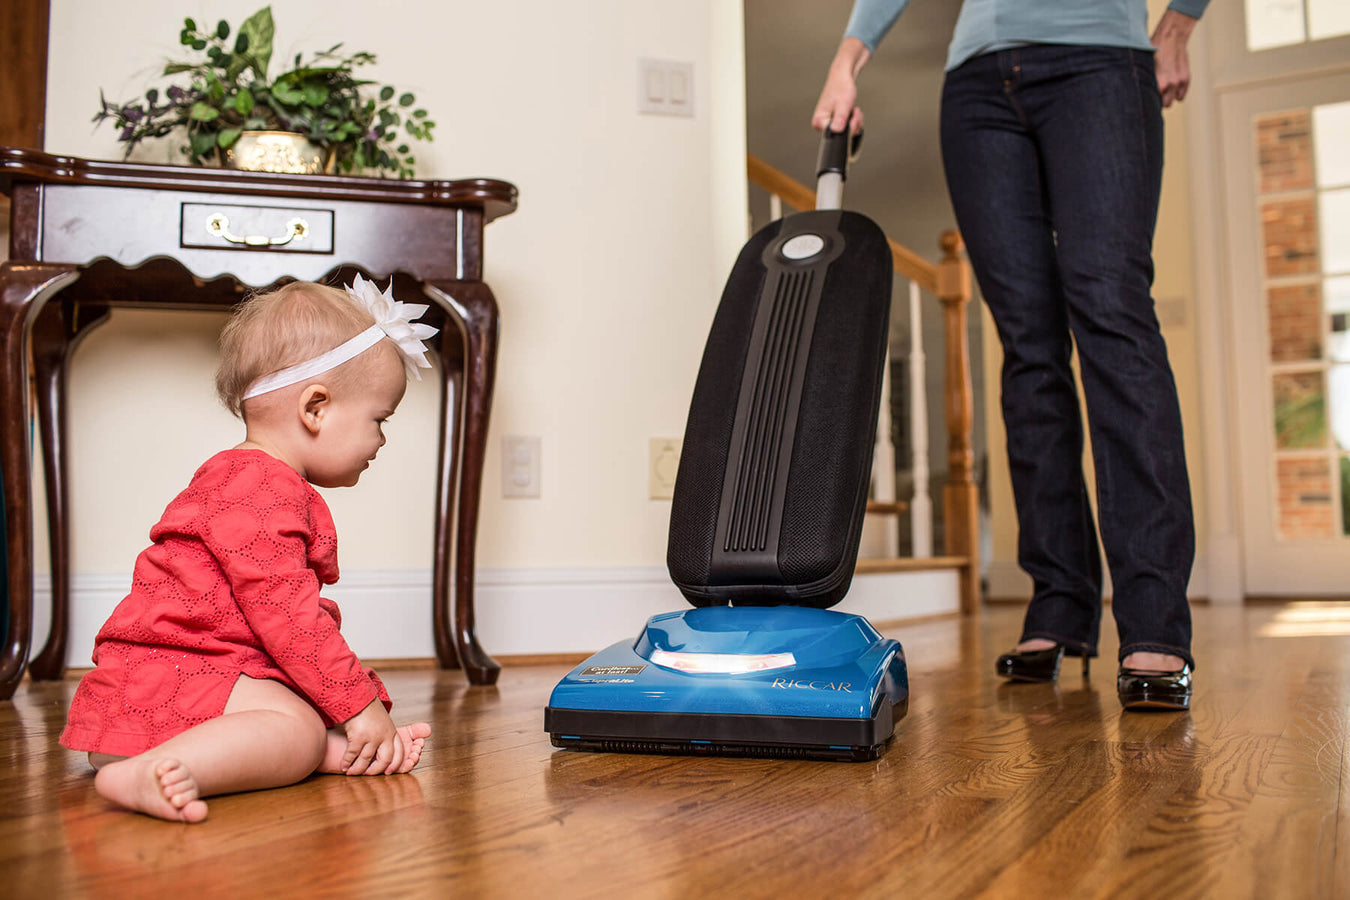 Vacuum Cleaner Stores Raleigh Cary Capital Vacuum Floor-Care World 1666 N Market Dr Raleigh NC 27609 (919) 878-8530 209 E Chatham St Cary NC 27511 www.cleanhomshop.com